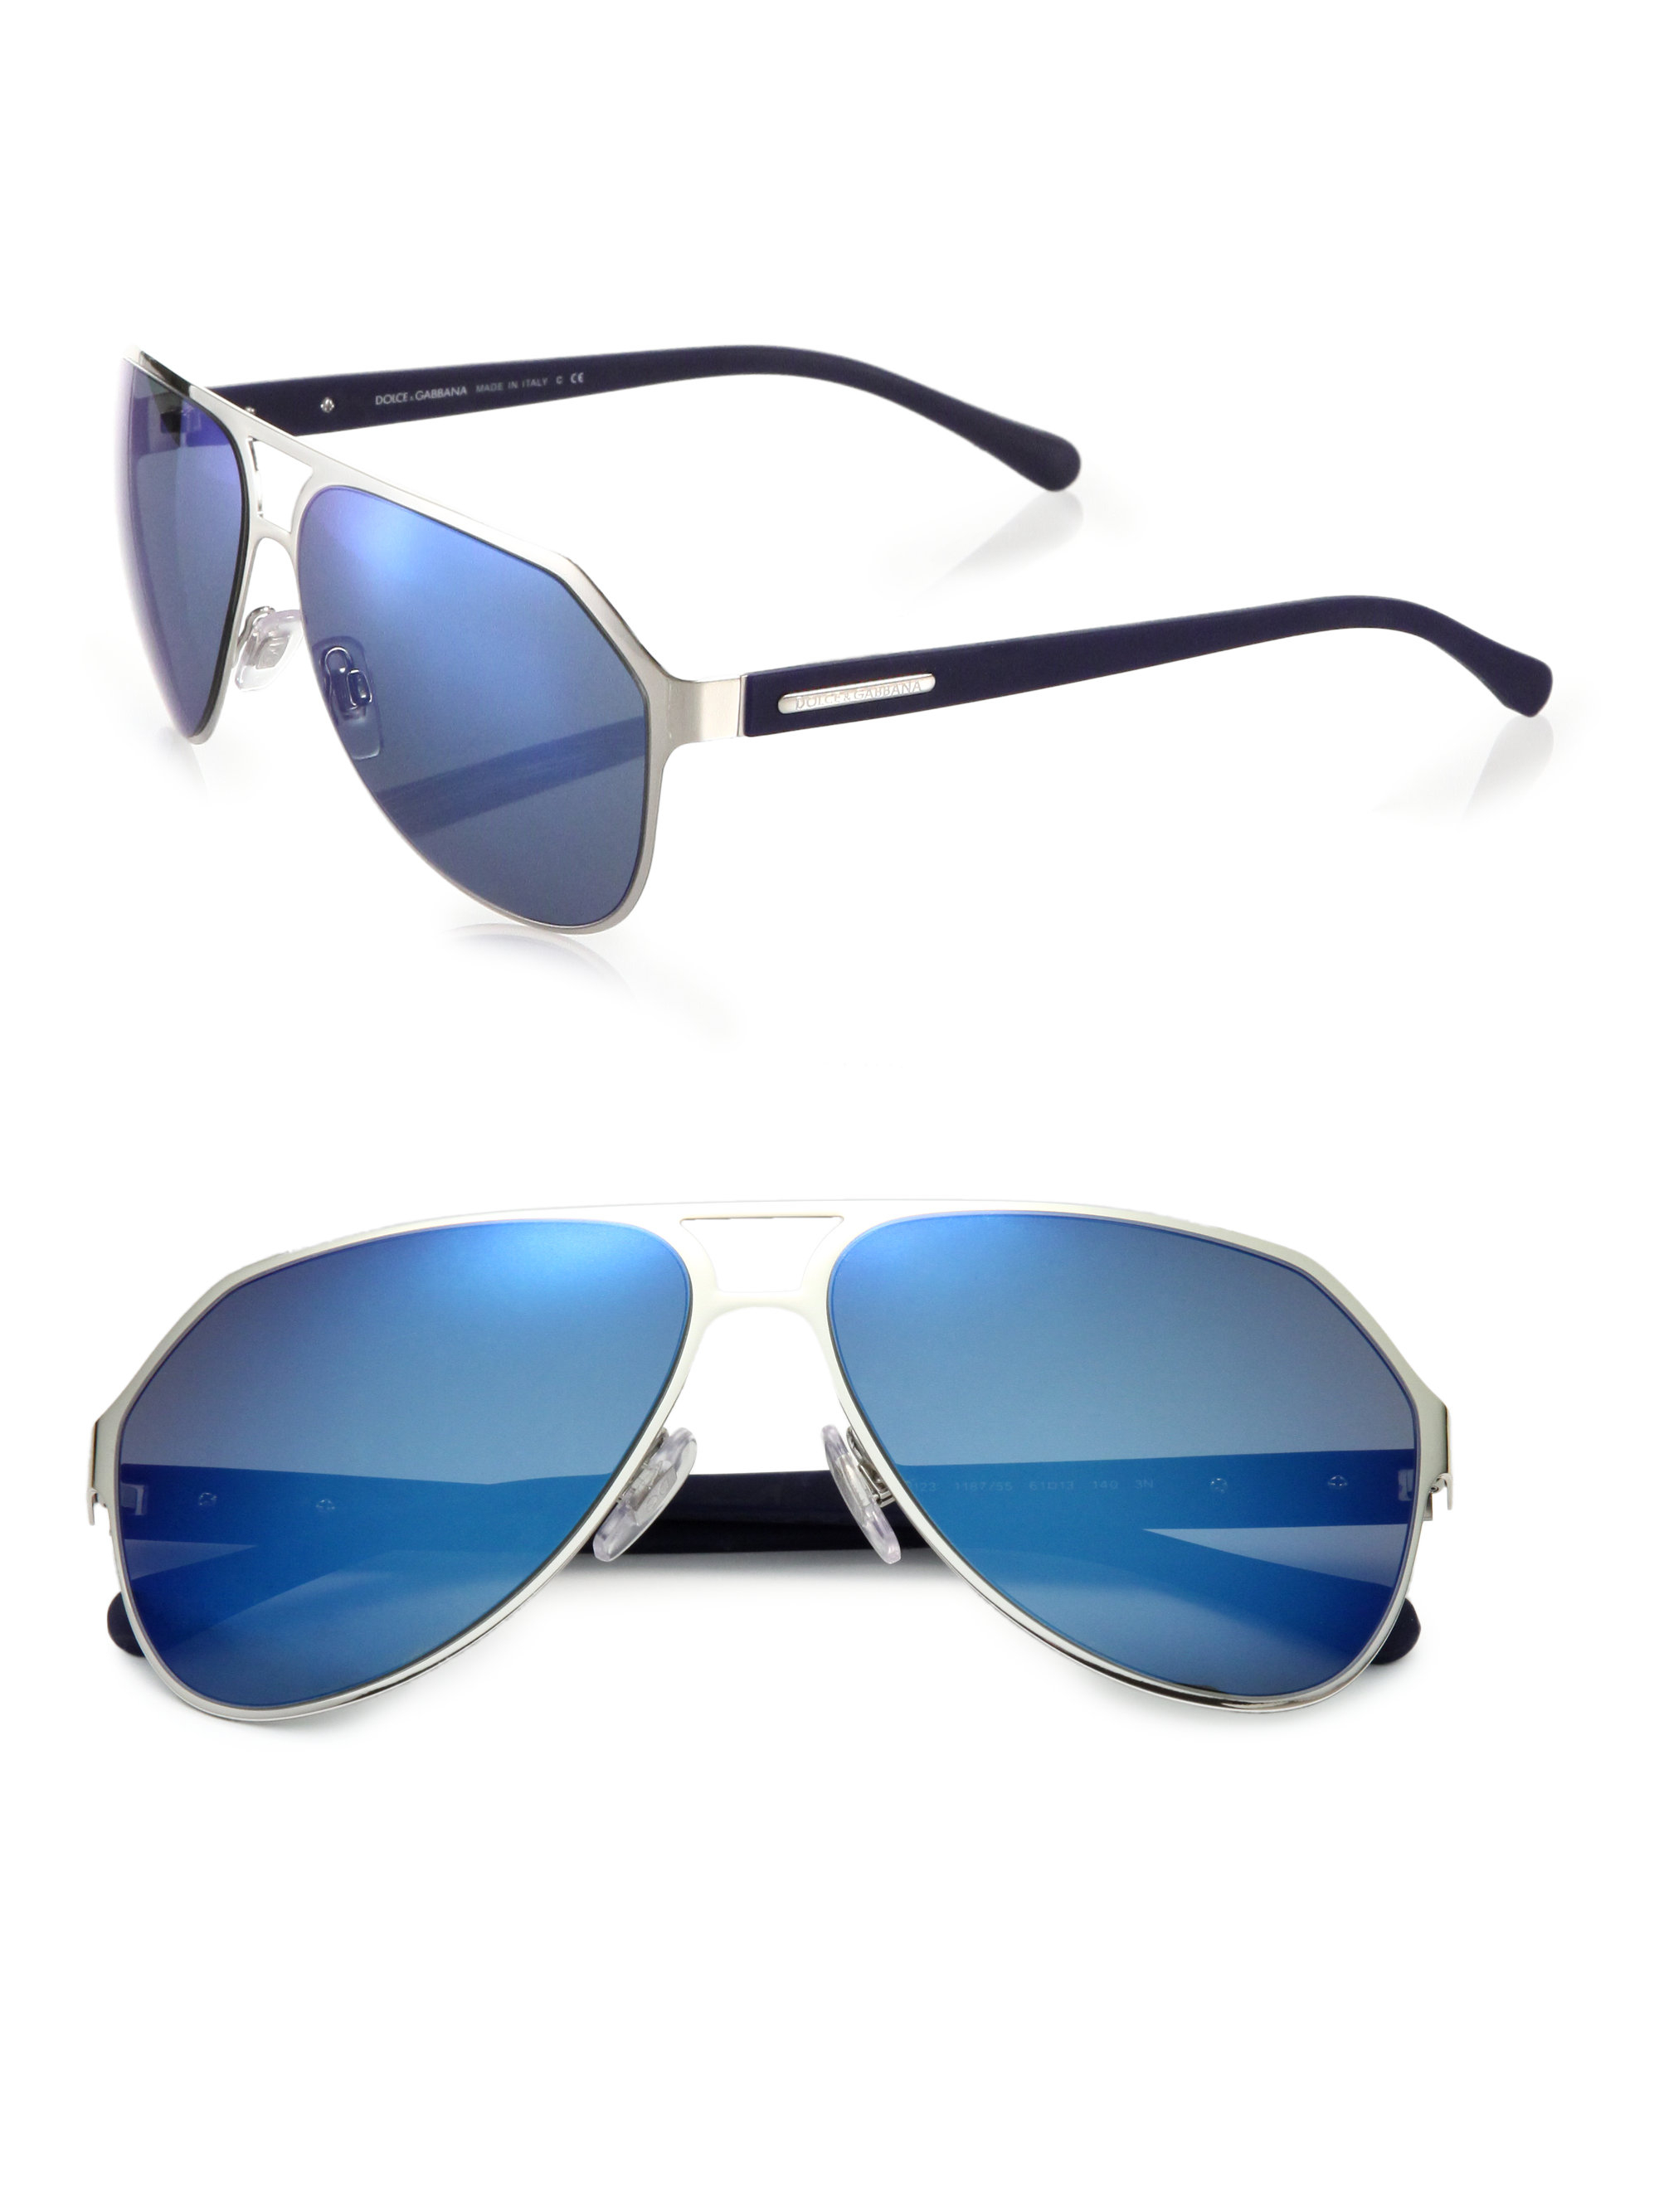 69f4559fb60 Dolce   gabbana Keyhole Aviator Sunglasses in Blue for Men